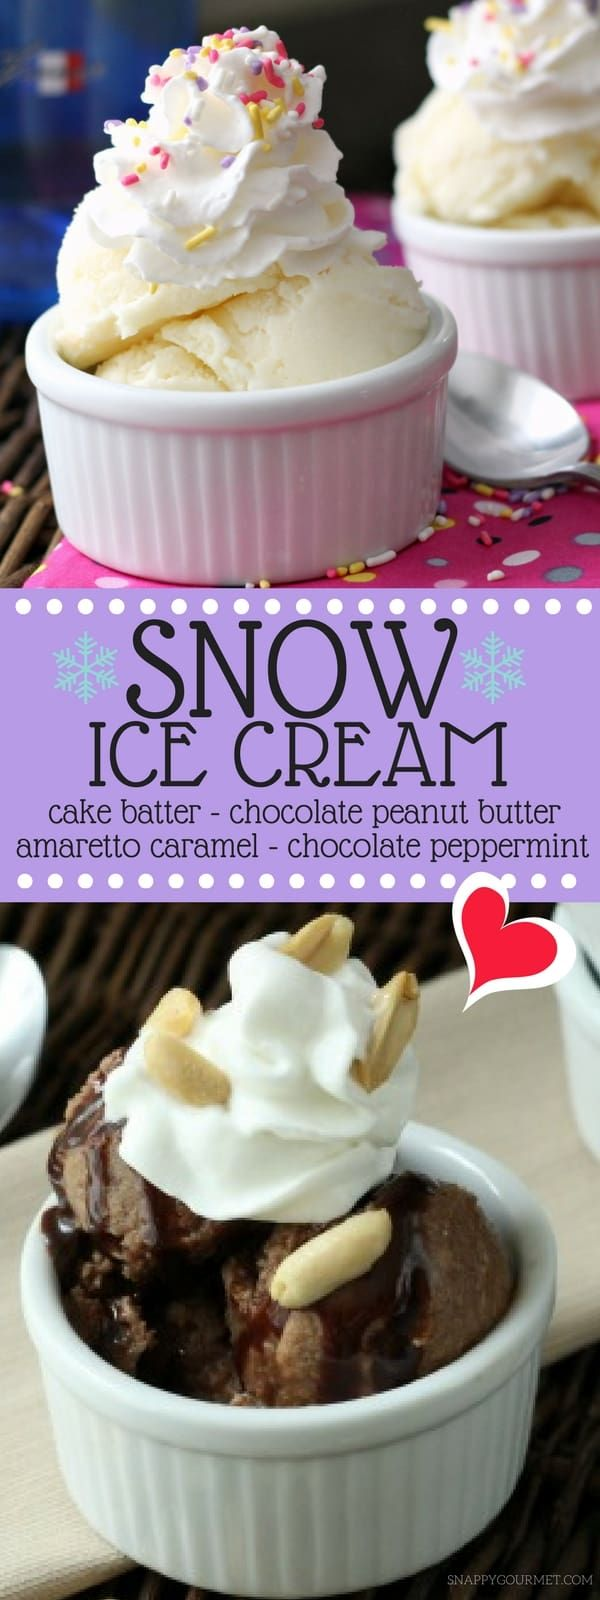 Cake Batter Snow Ice Cream Recipe - Snappy Gourmet #snowicecreamrecipe